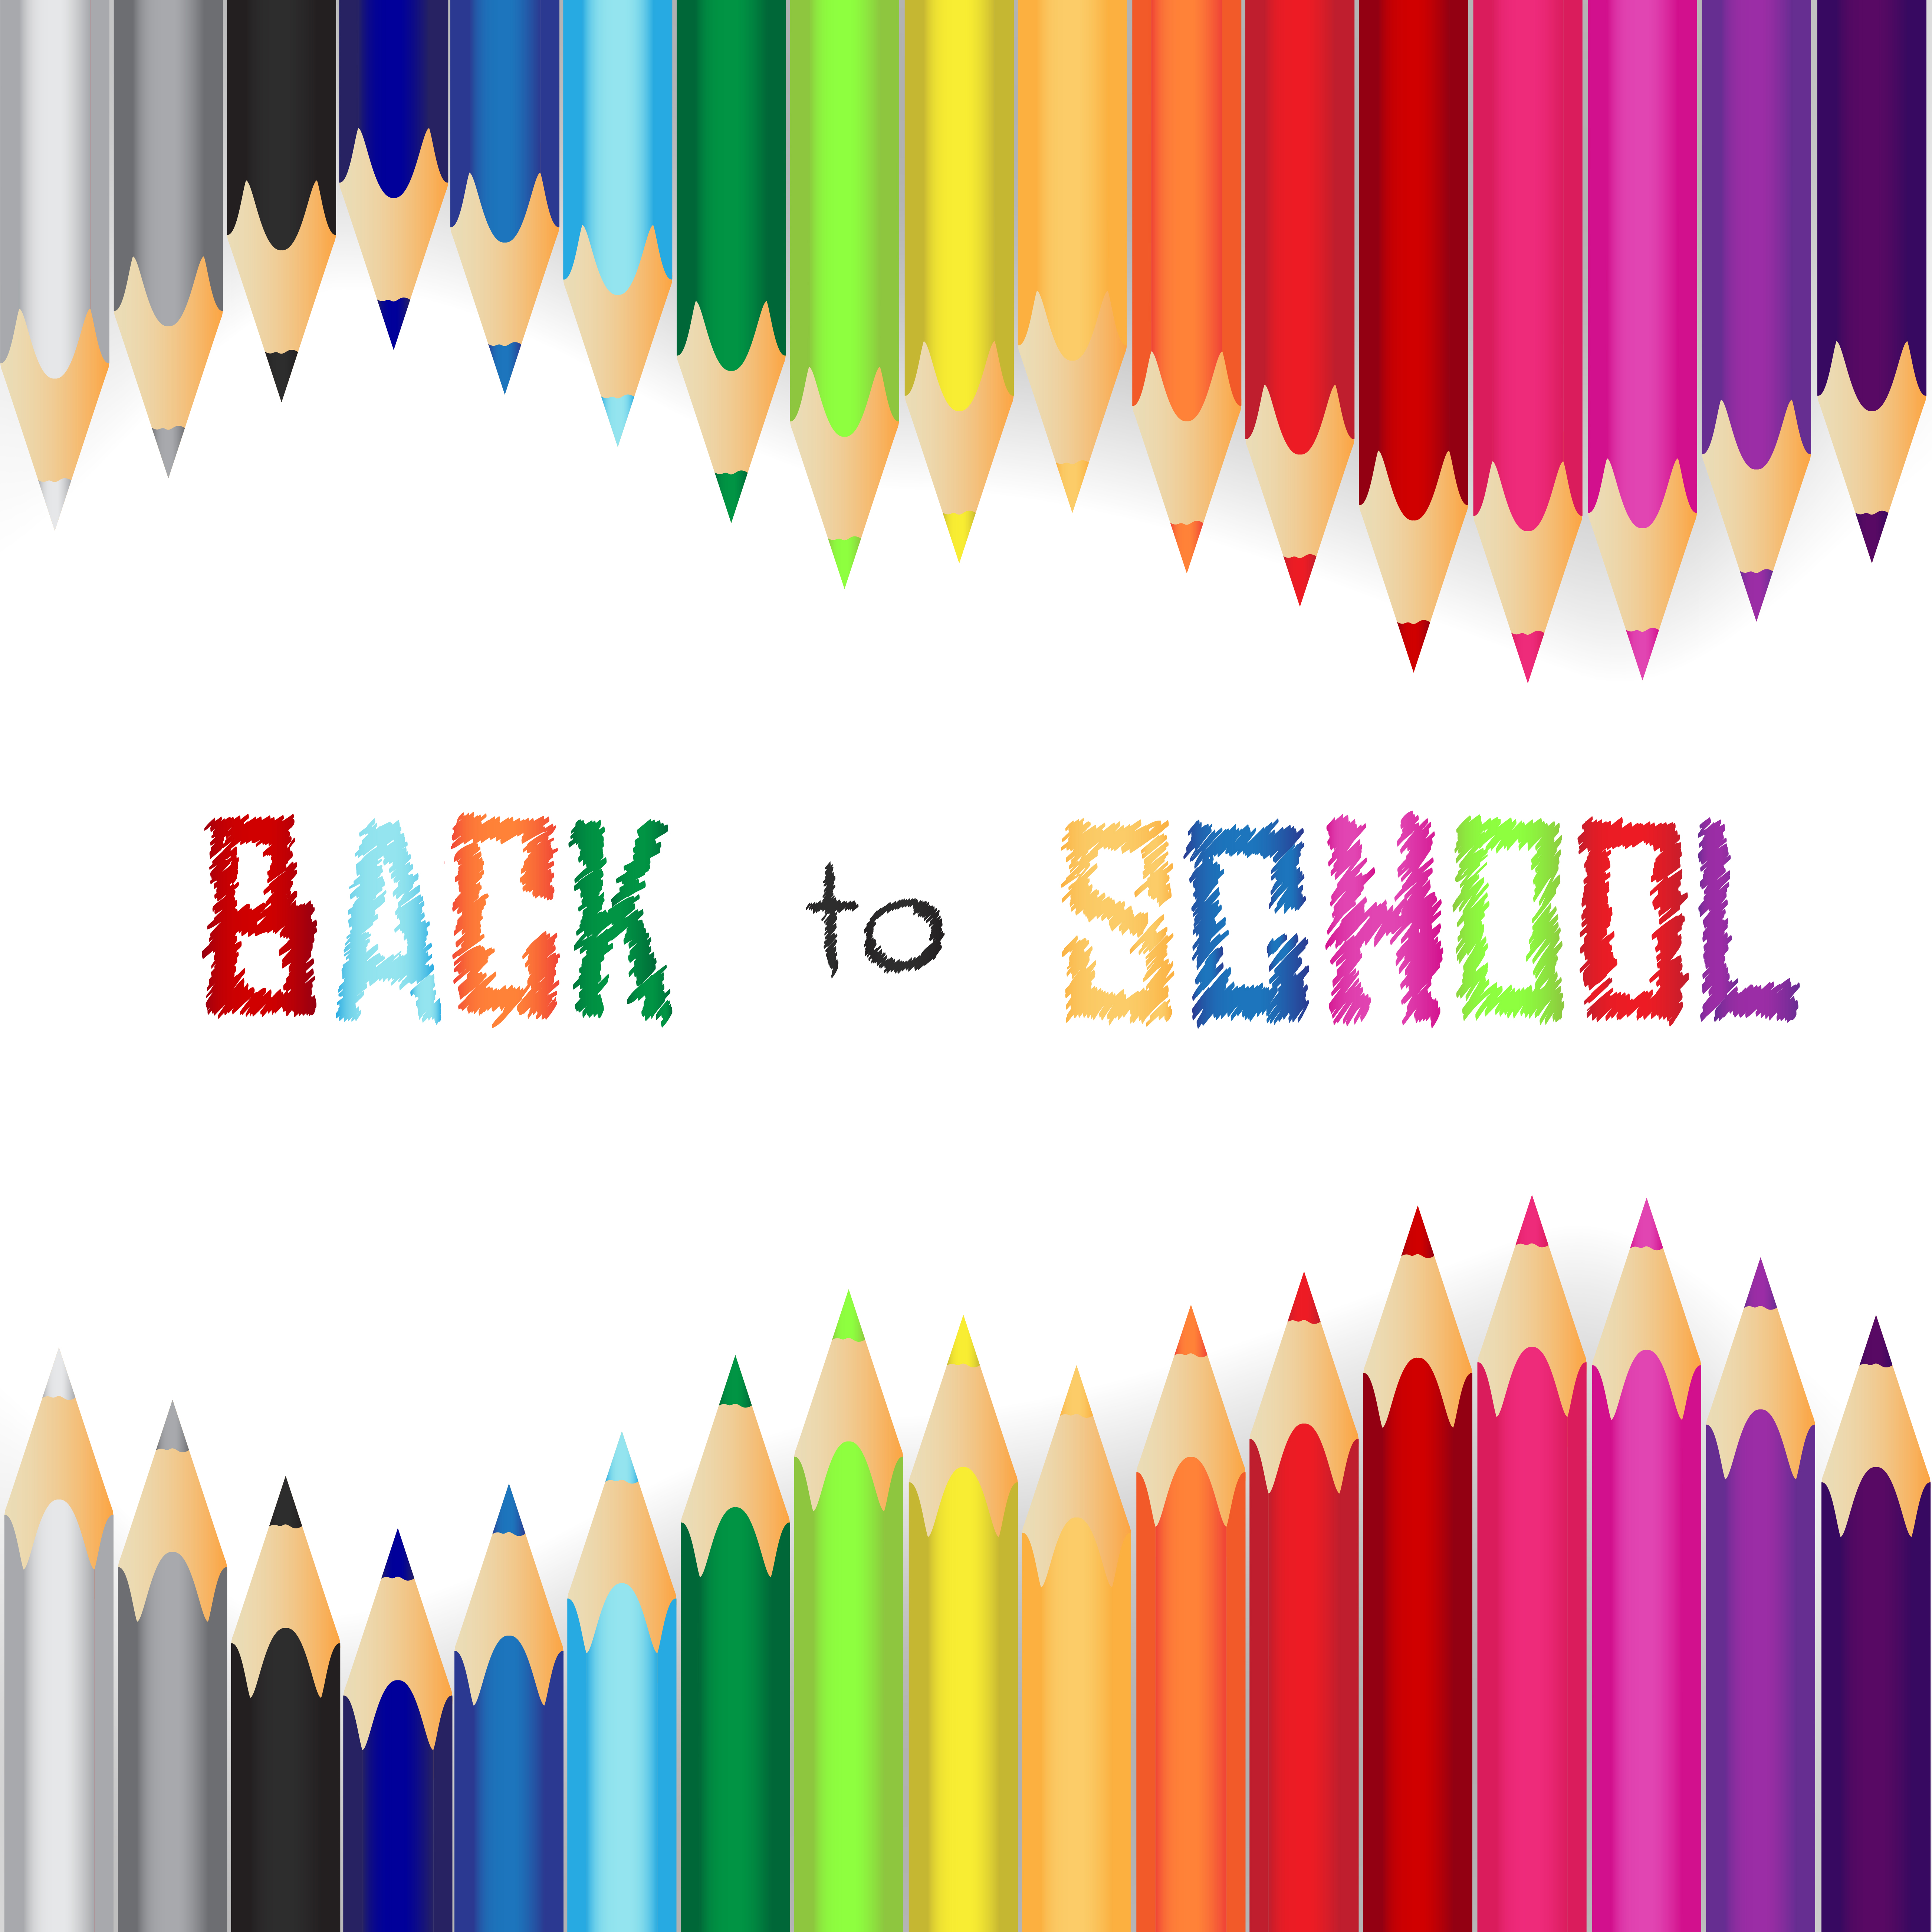 Back To School Education Concept Background With Cute Color Pencils Download Free Vectors Clipart Graphics Vector Art